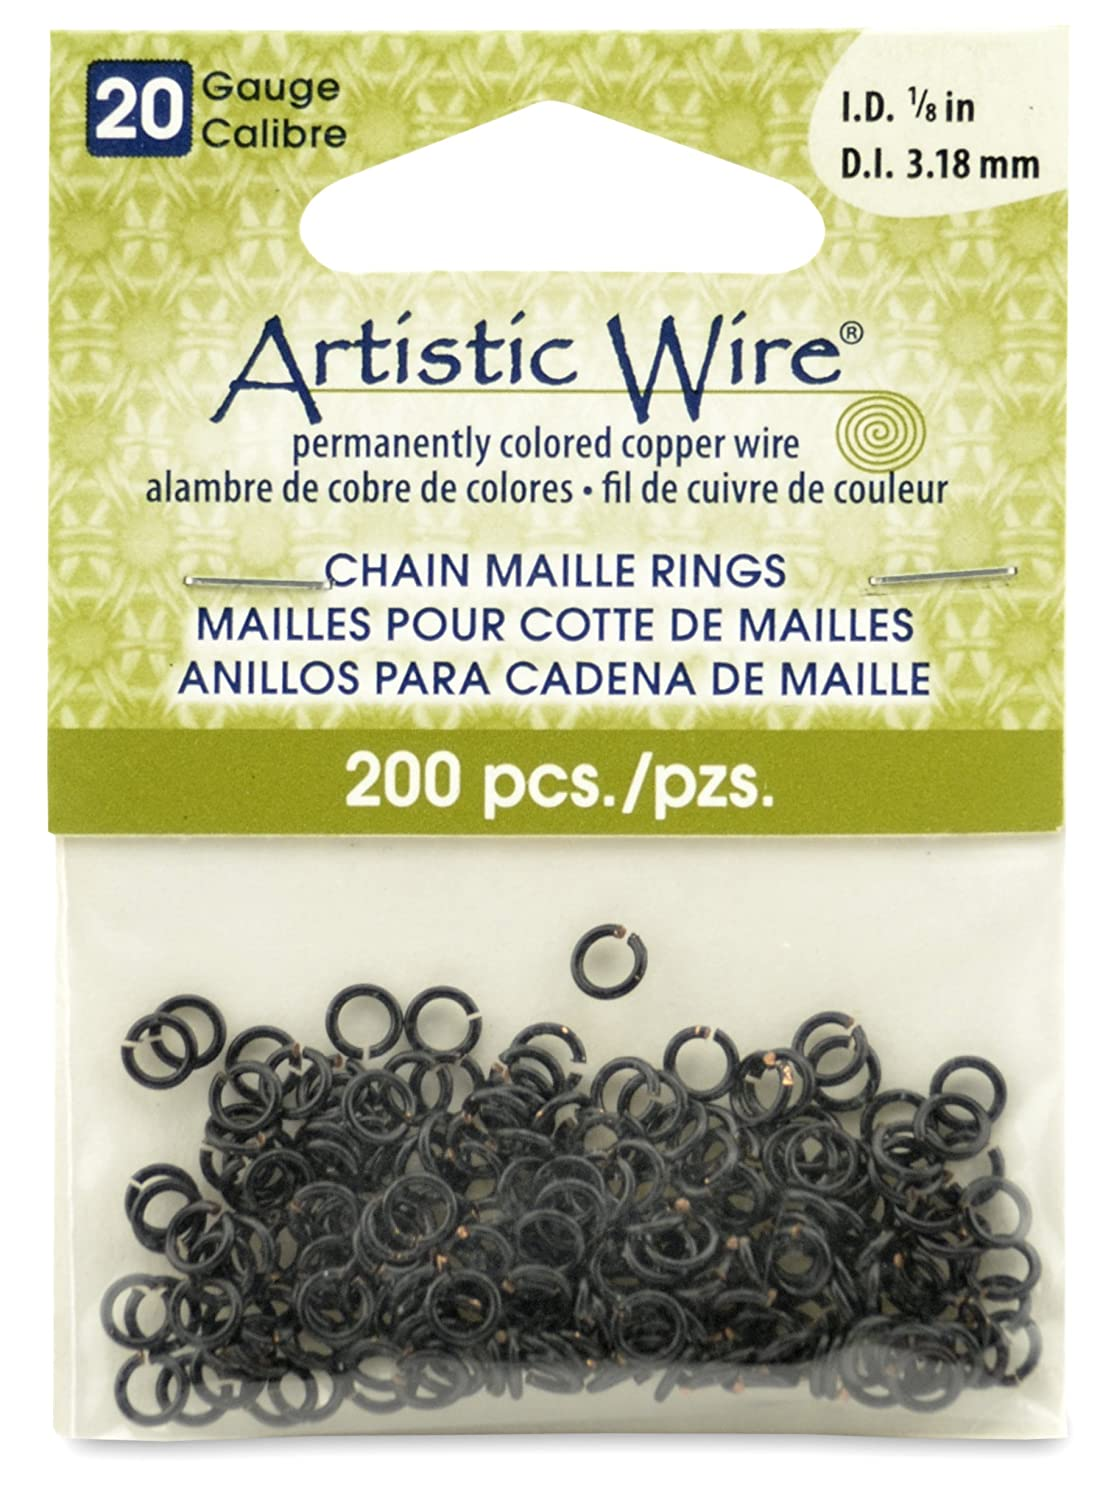 Artistic Wire Beadalon 1/8-inch 200 Pieces 20-Gauge Chain Maille Rings, Black A314-20-02-04